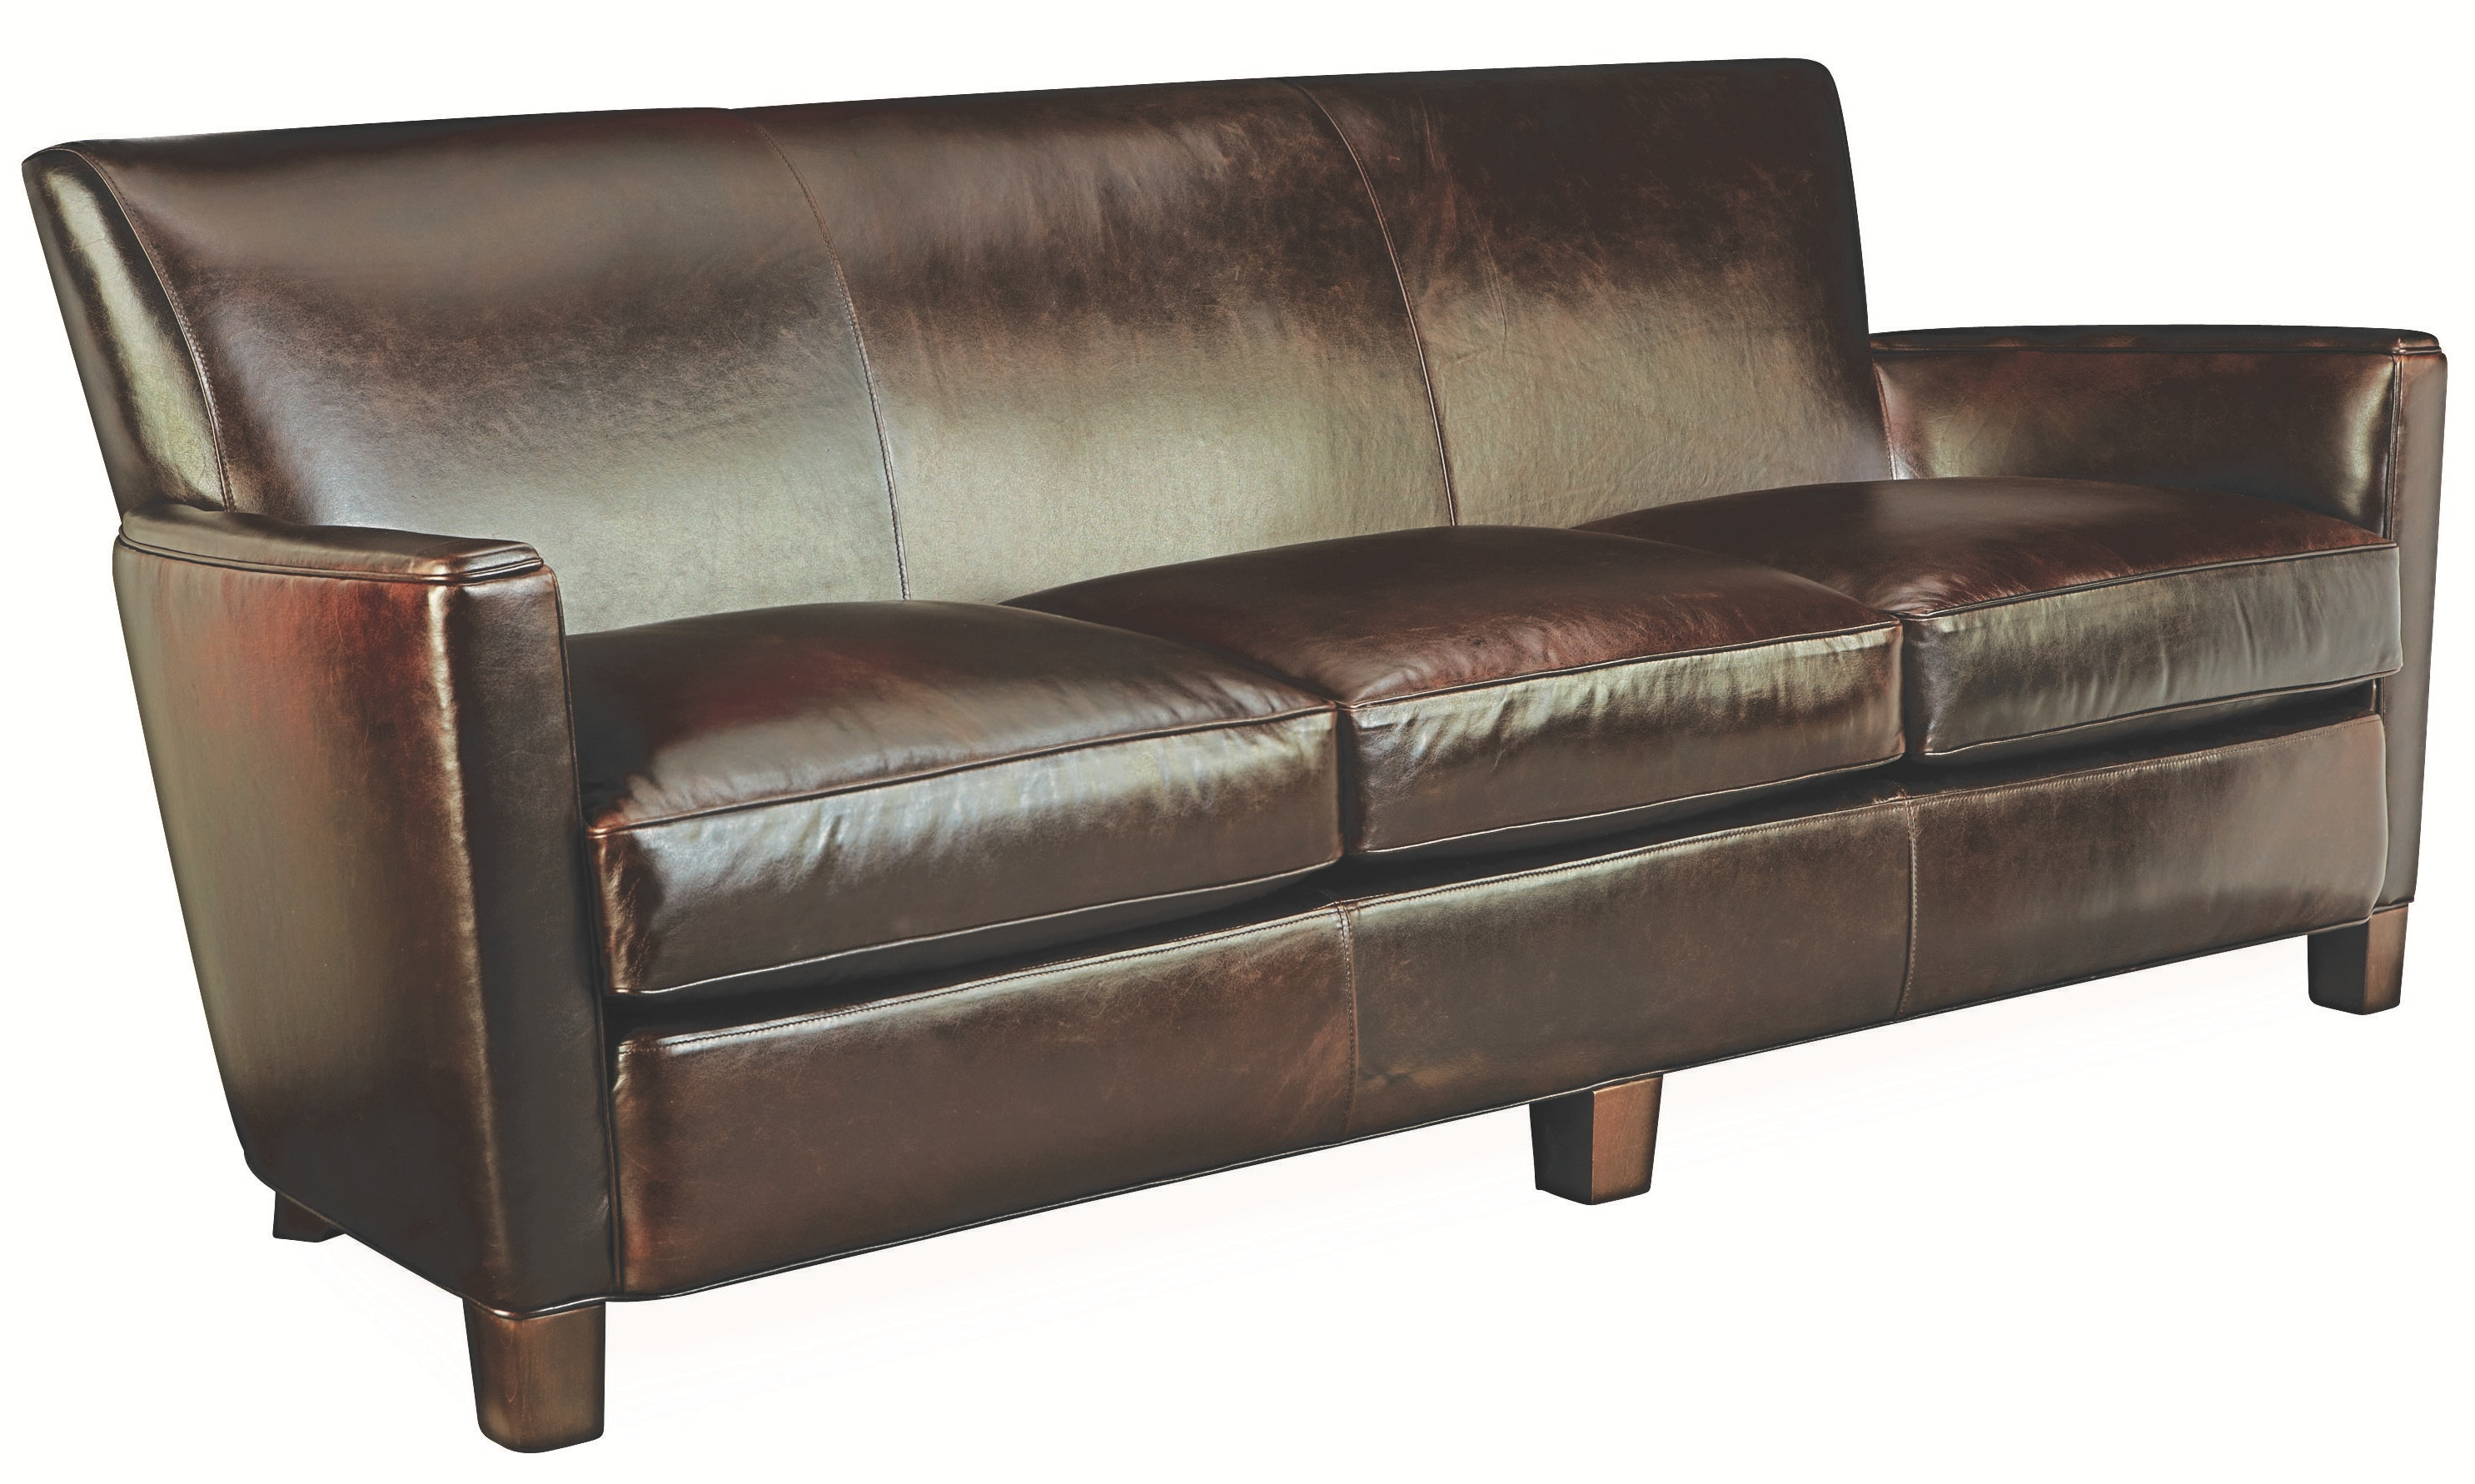 leather sofas chicago area broyhill sectional sofa with chaise lee industries living room l1017 03 toms